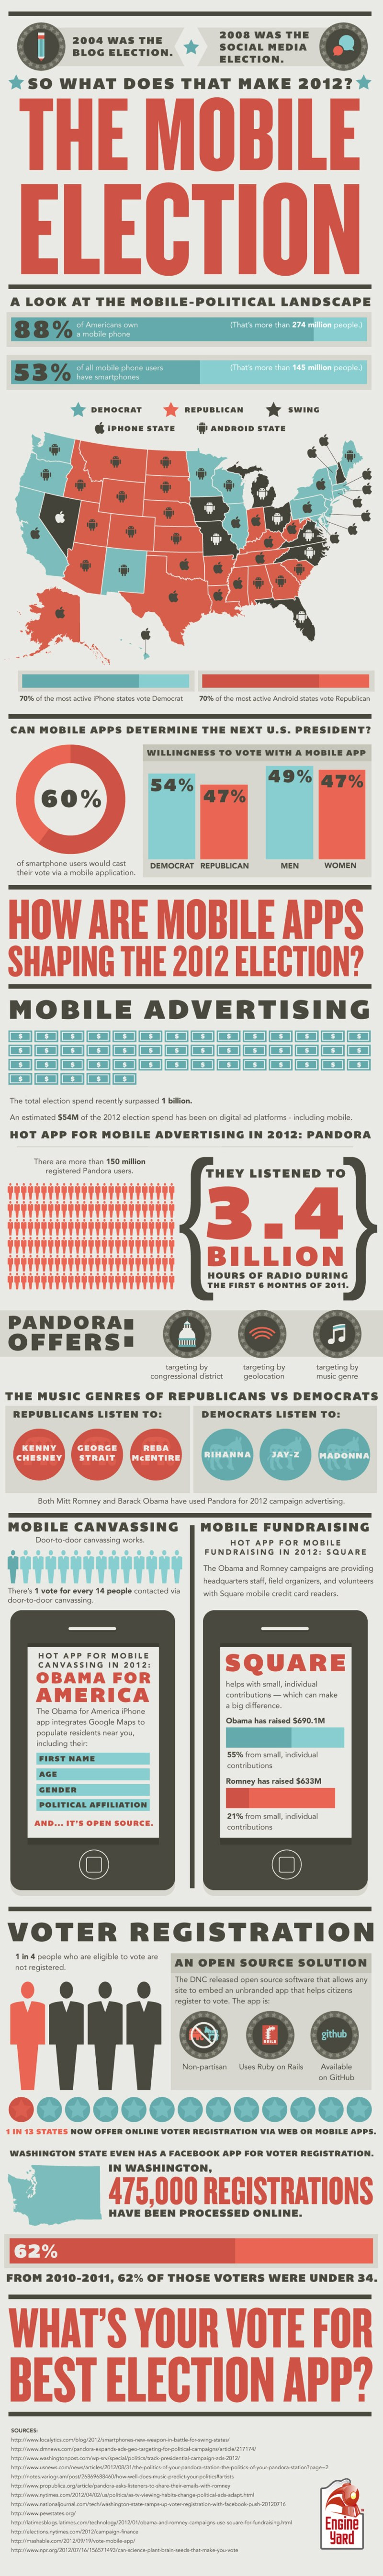 Infographic - 2012: An App Election?